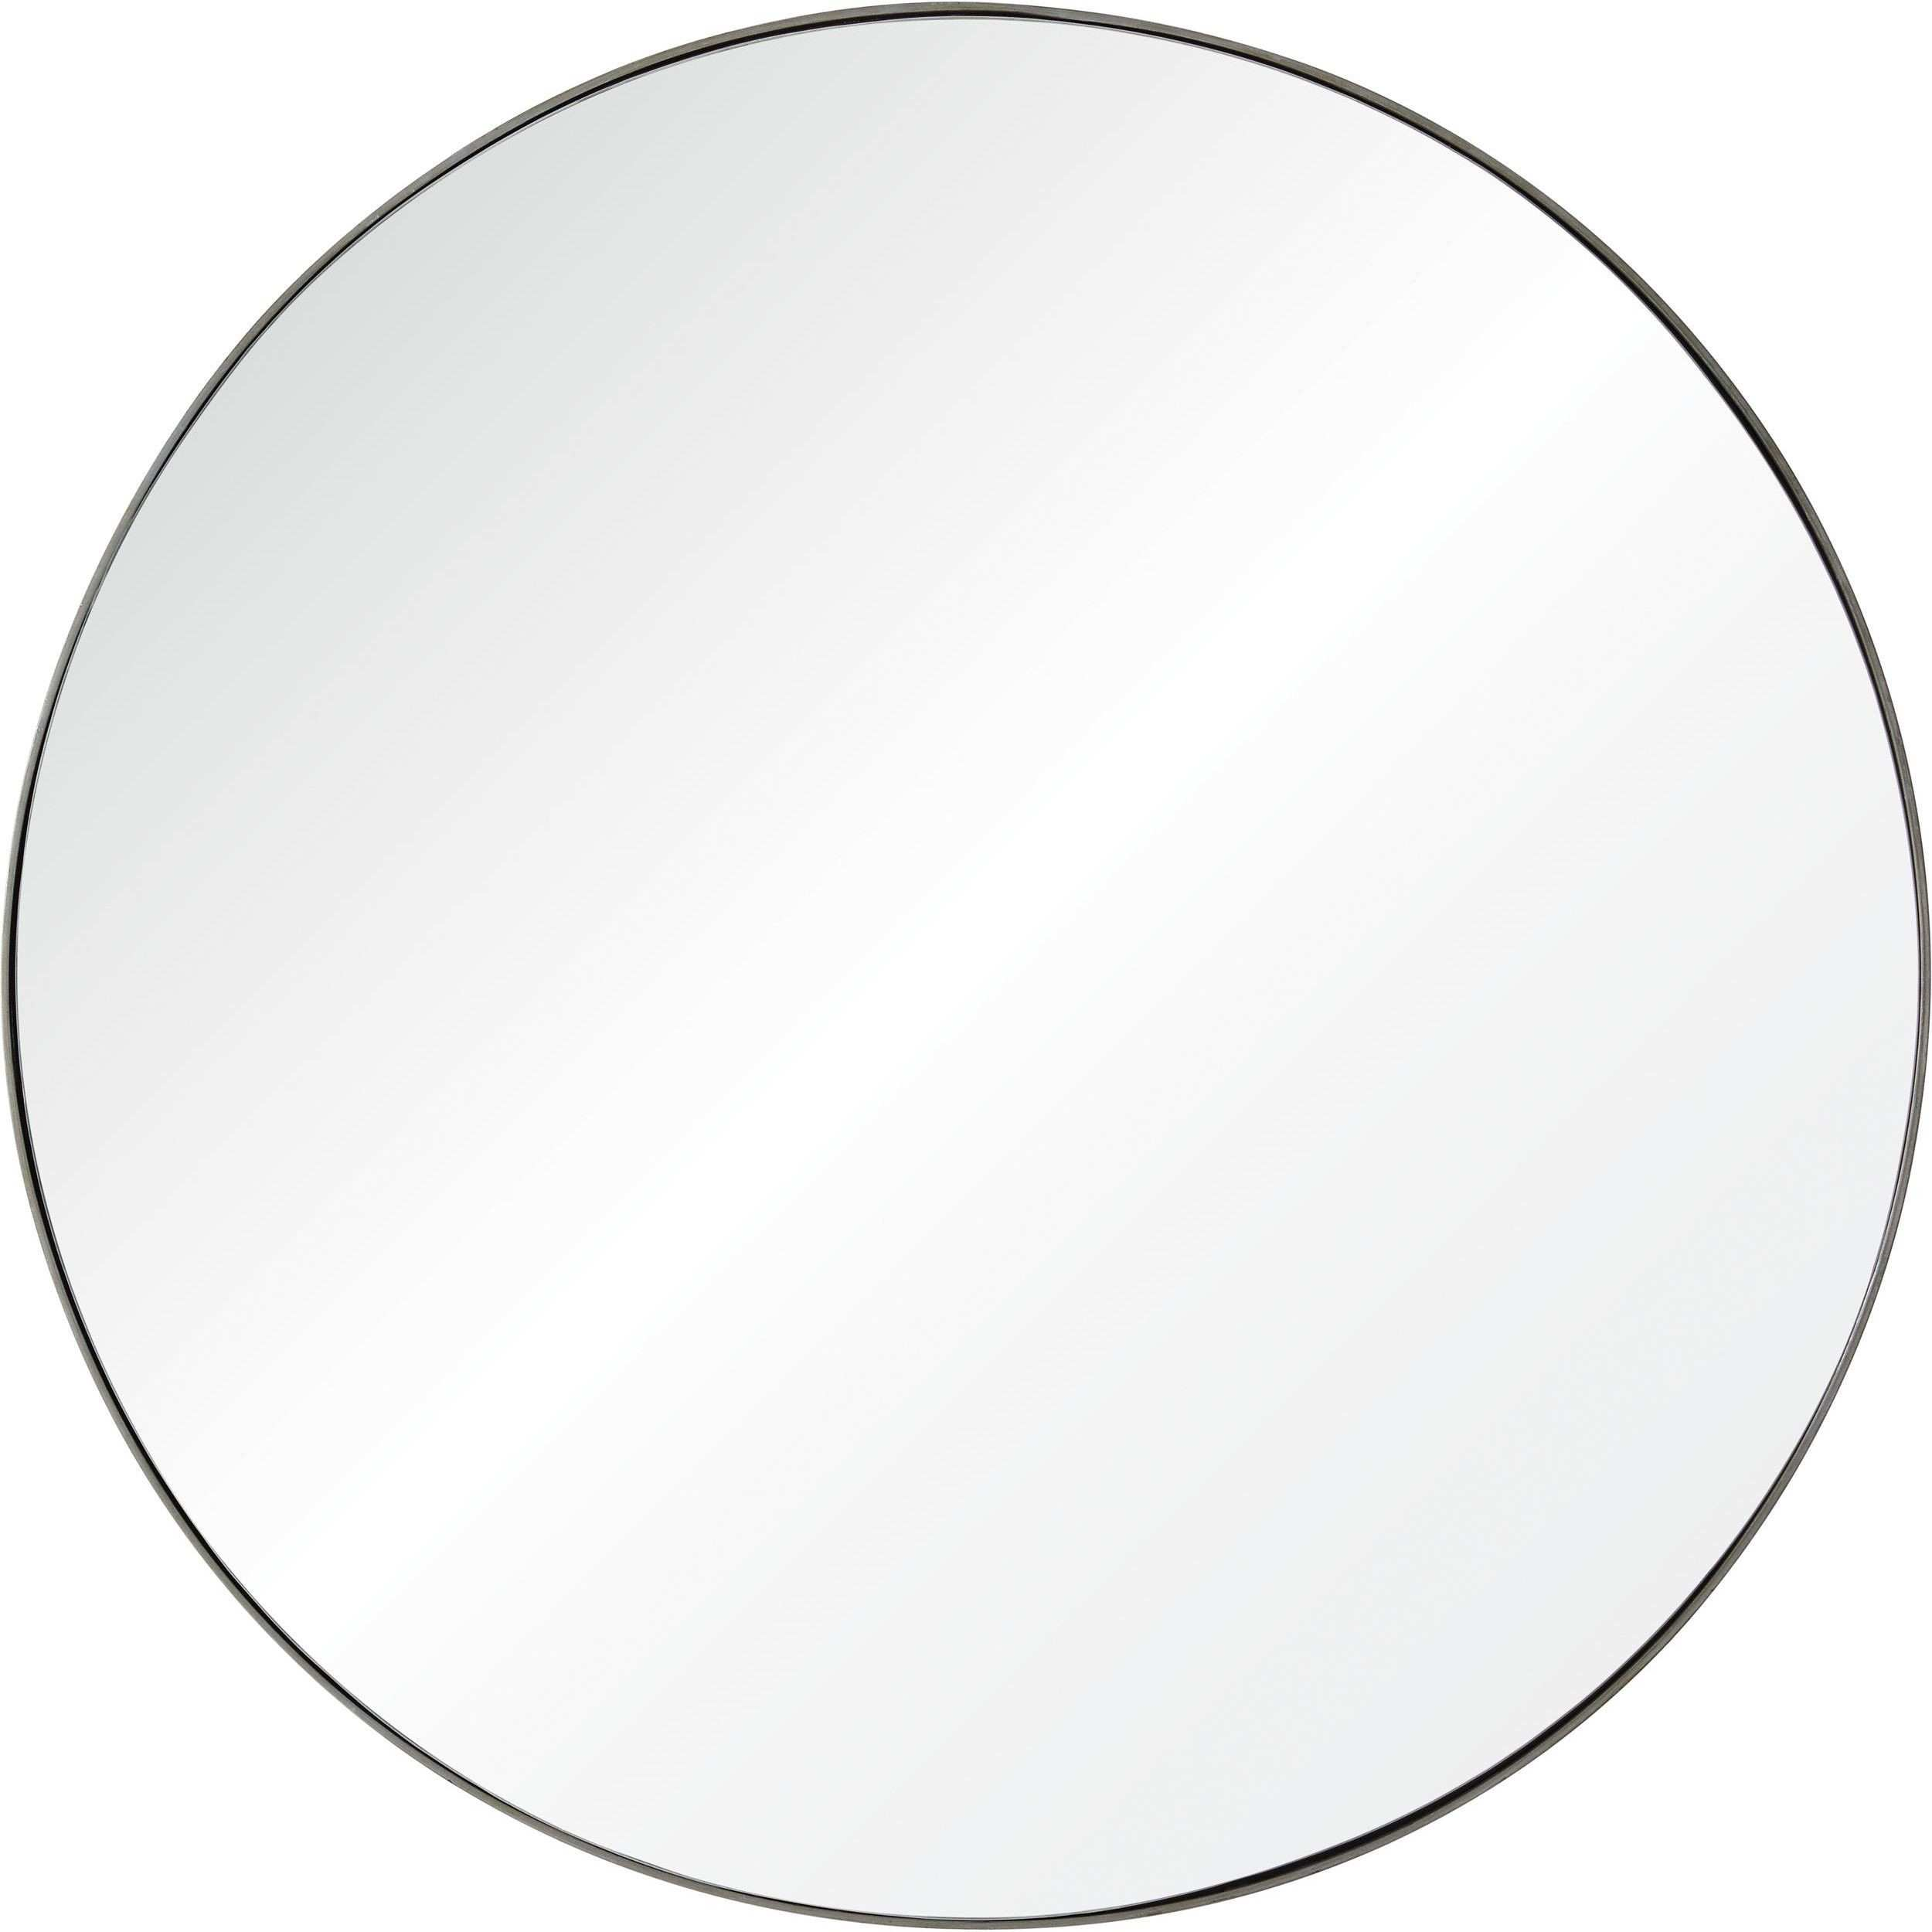 "Wayfair Ren Wil Loupe Wall Mirror 48"" $739 99 in stock 2"